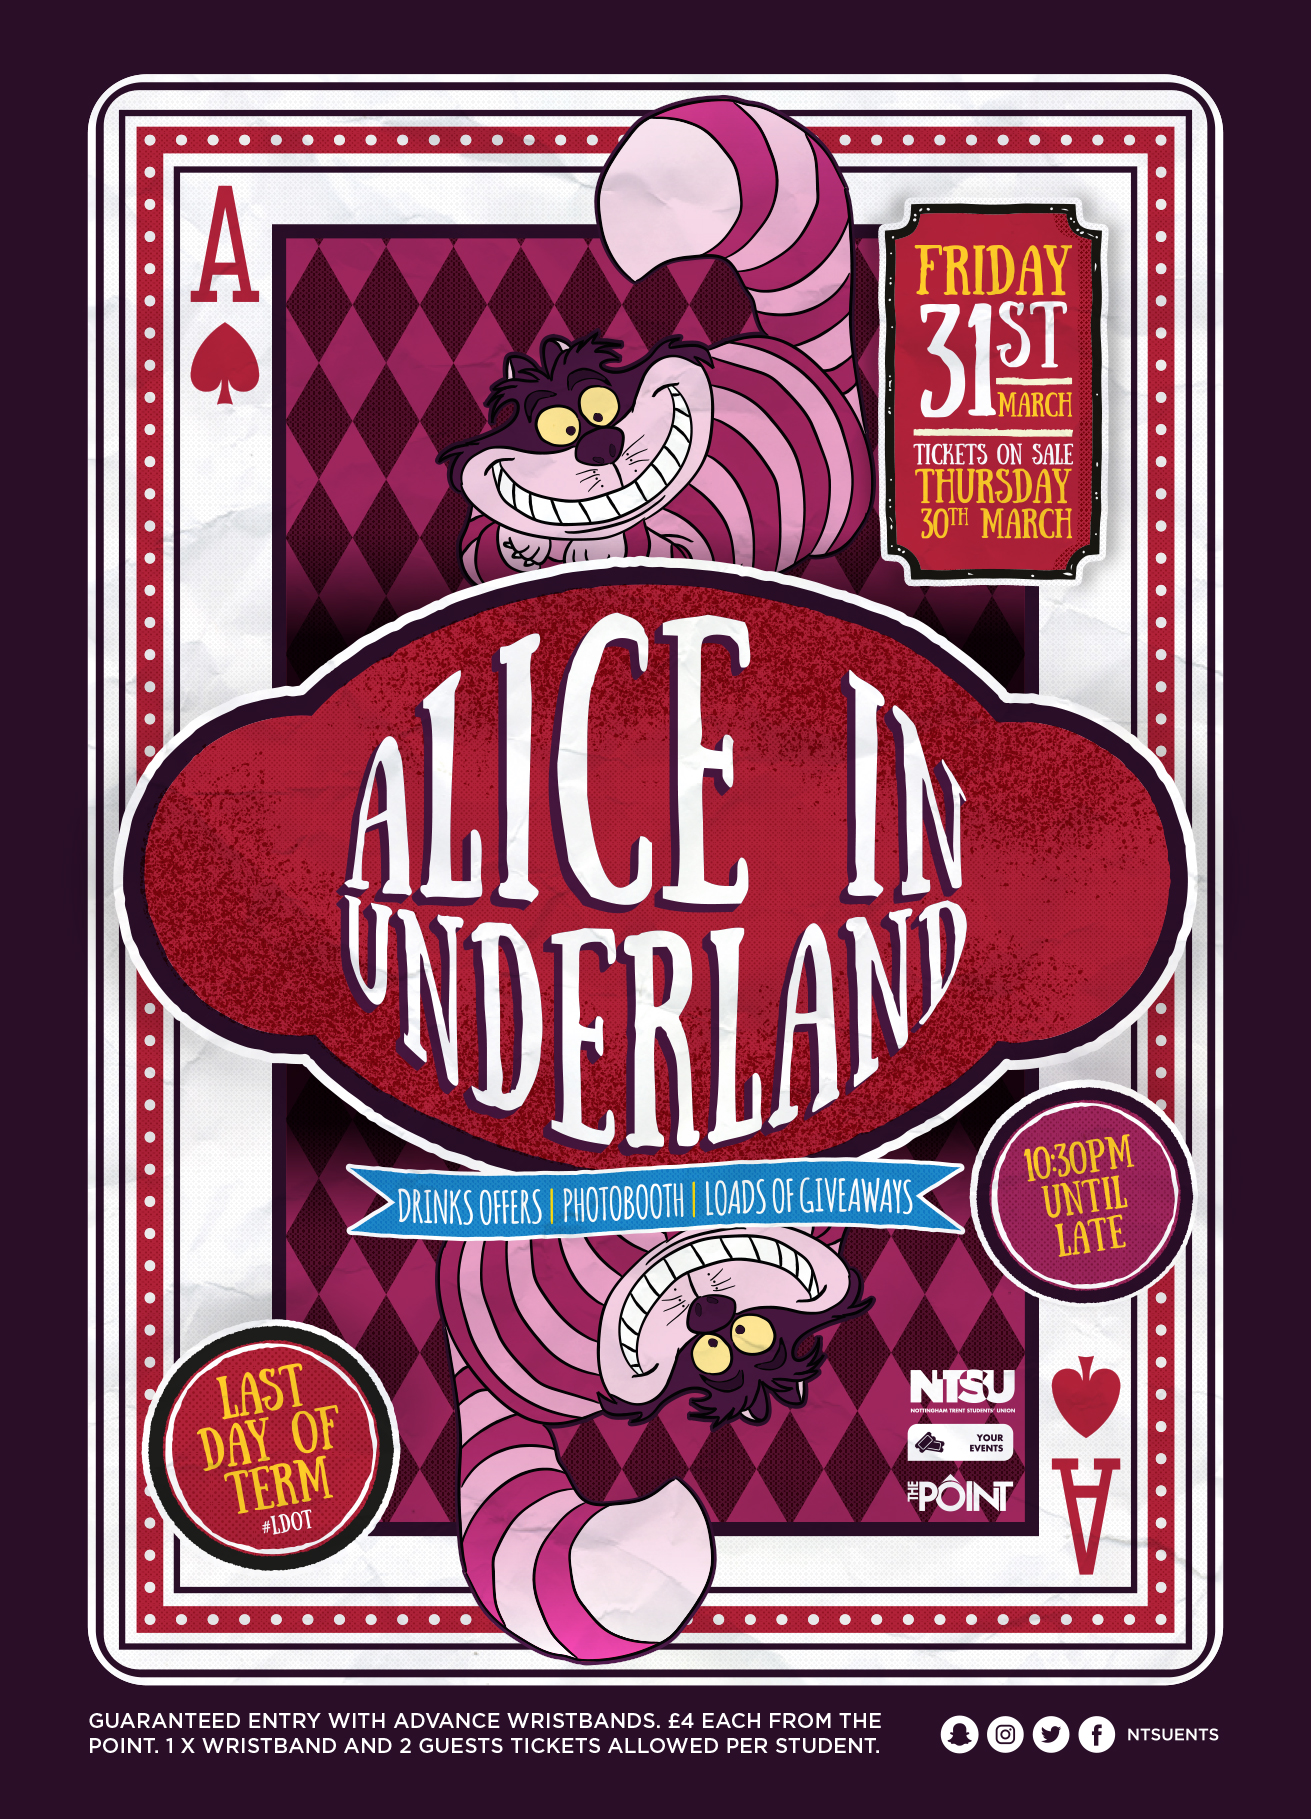 ldot-alice-in-wonderland-clifton-flyers-a6-2